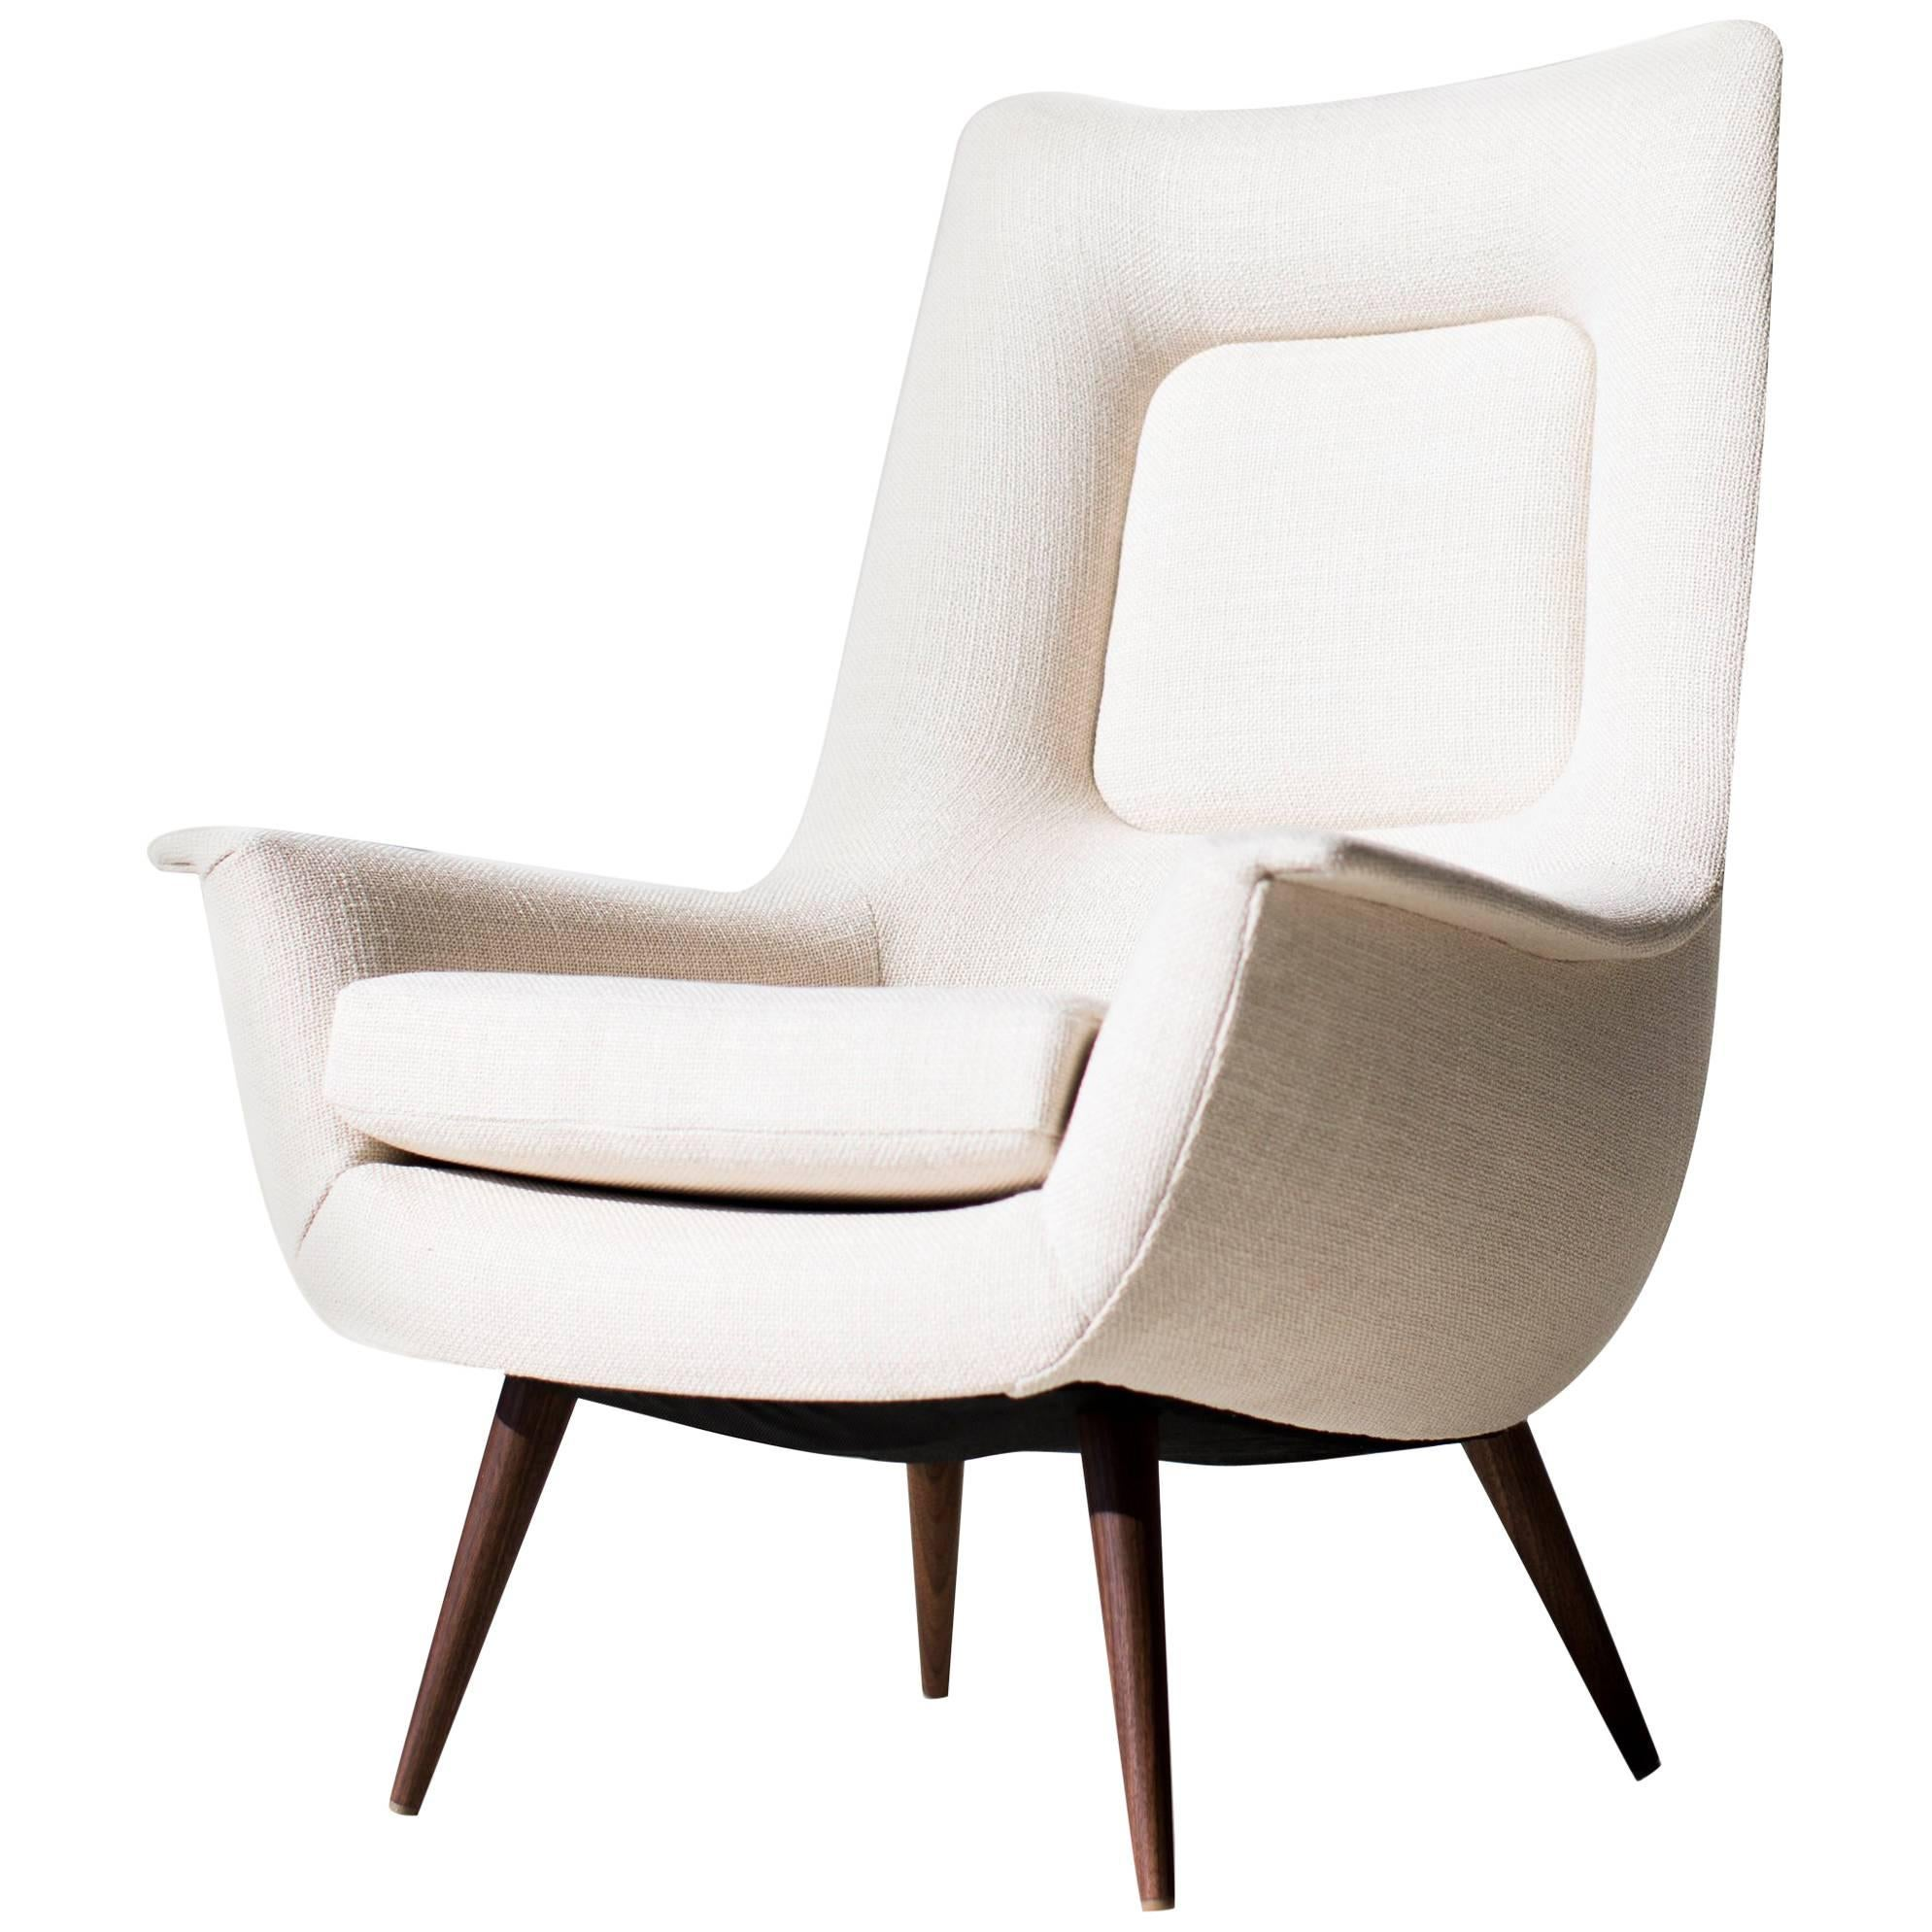 Lawrence Peabody High Back Lounge Chair P-1714 for Craft Associates Furniture